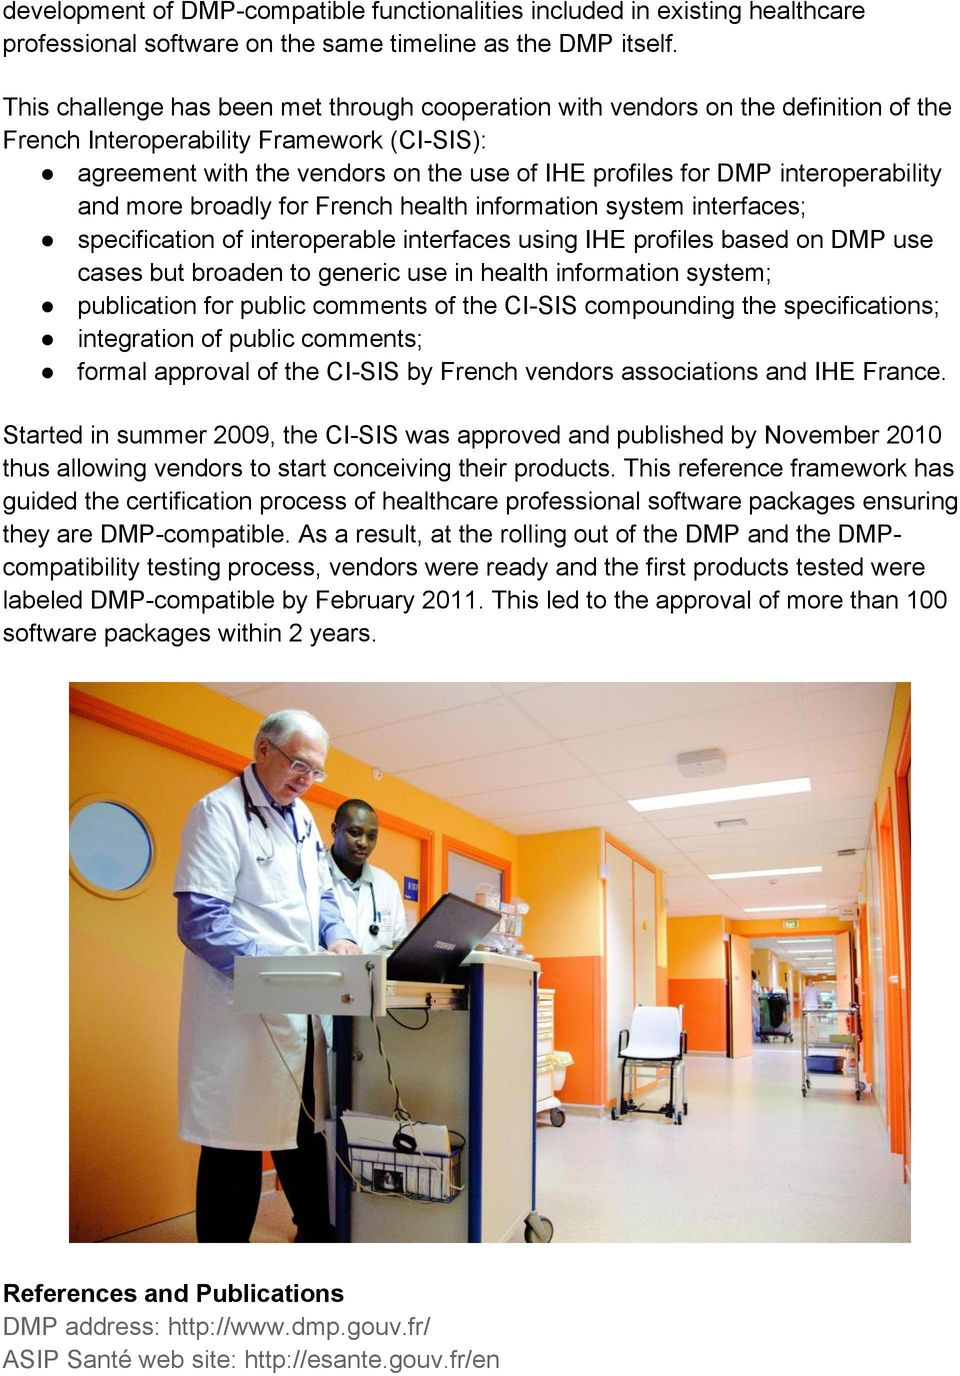 interoperability and more broadly for French health information system interfaces; specification of interoperable interfaces using IHE profiles based on DMP use cases but broaden to generic use in